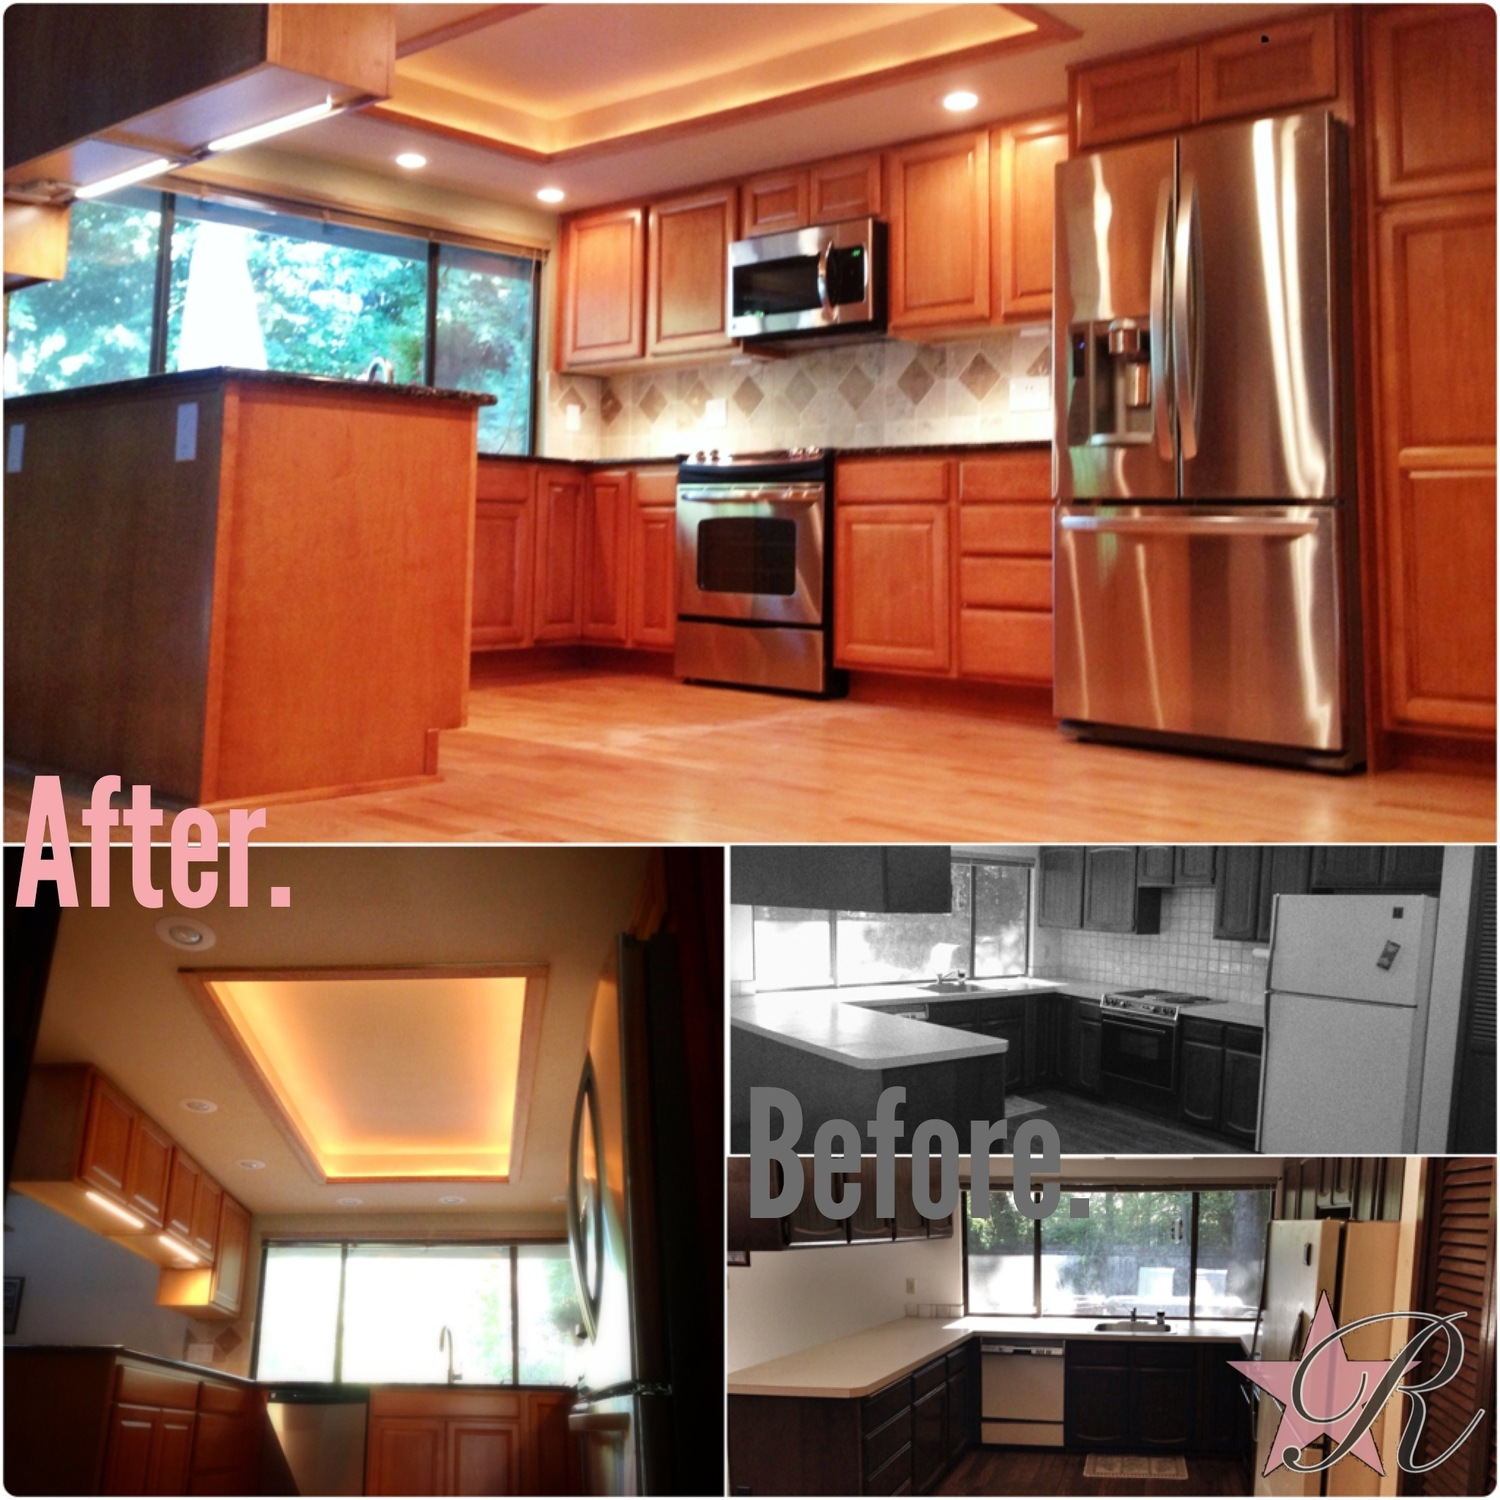 Kitchen renovation rockstar remodel this kitchen was revitalized with new cabinets tile and flooring when the fluorescent dailygadgetfo Choice Image